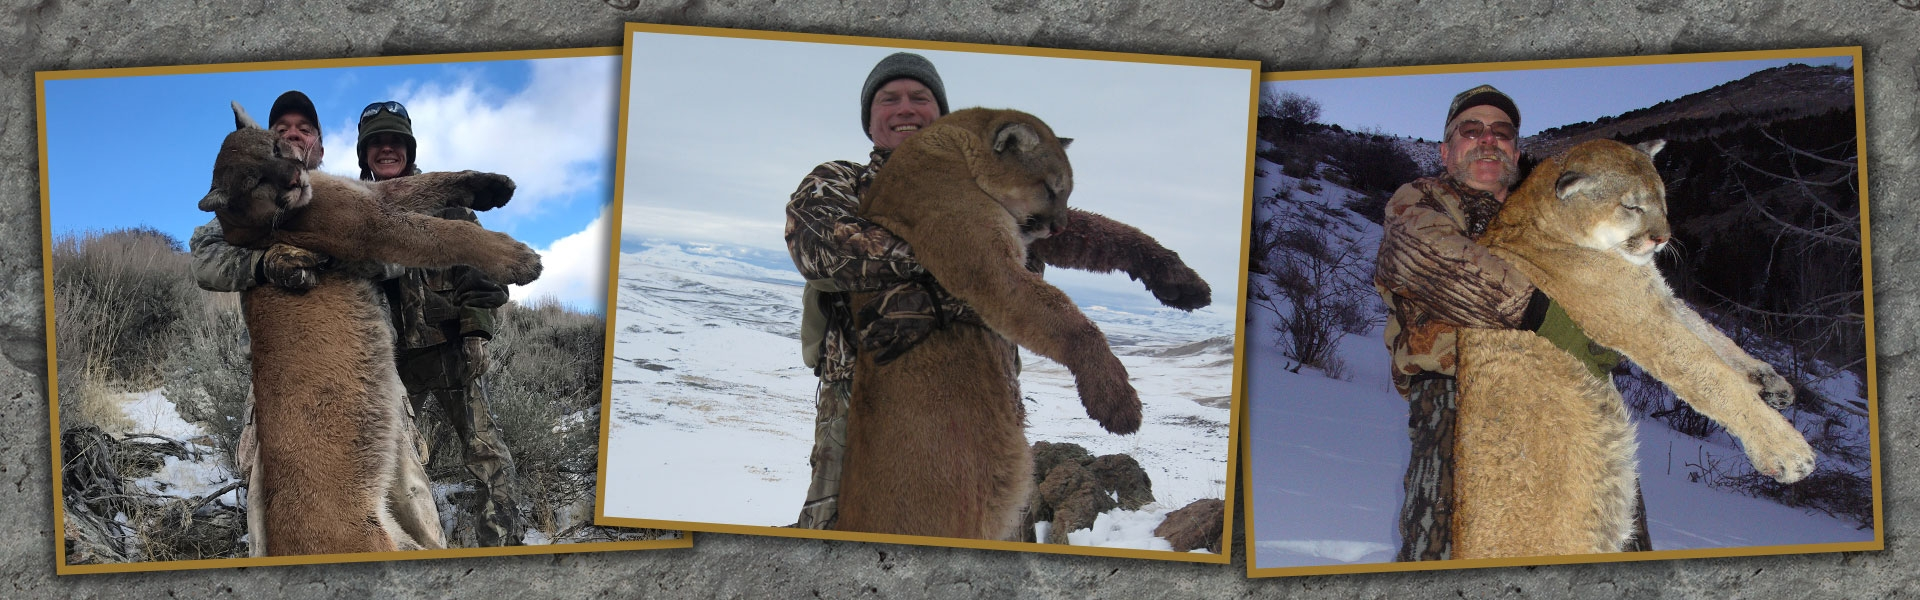 Nevada Mountain Lion Hunts